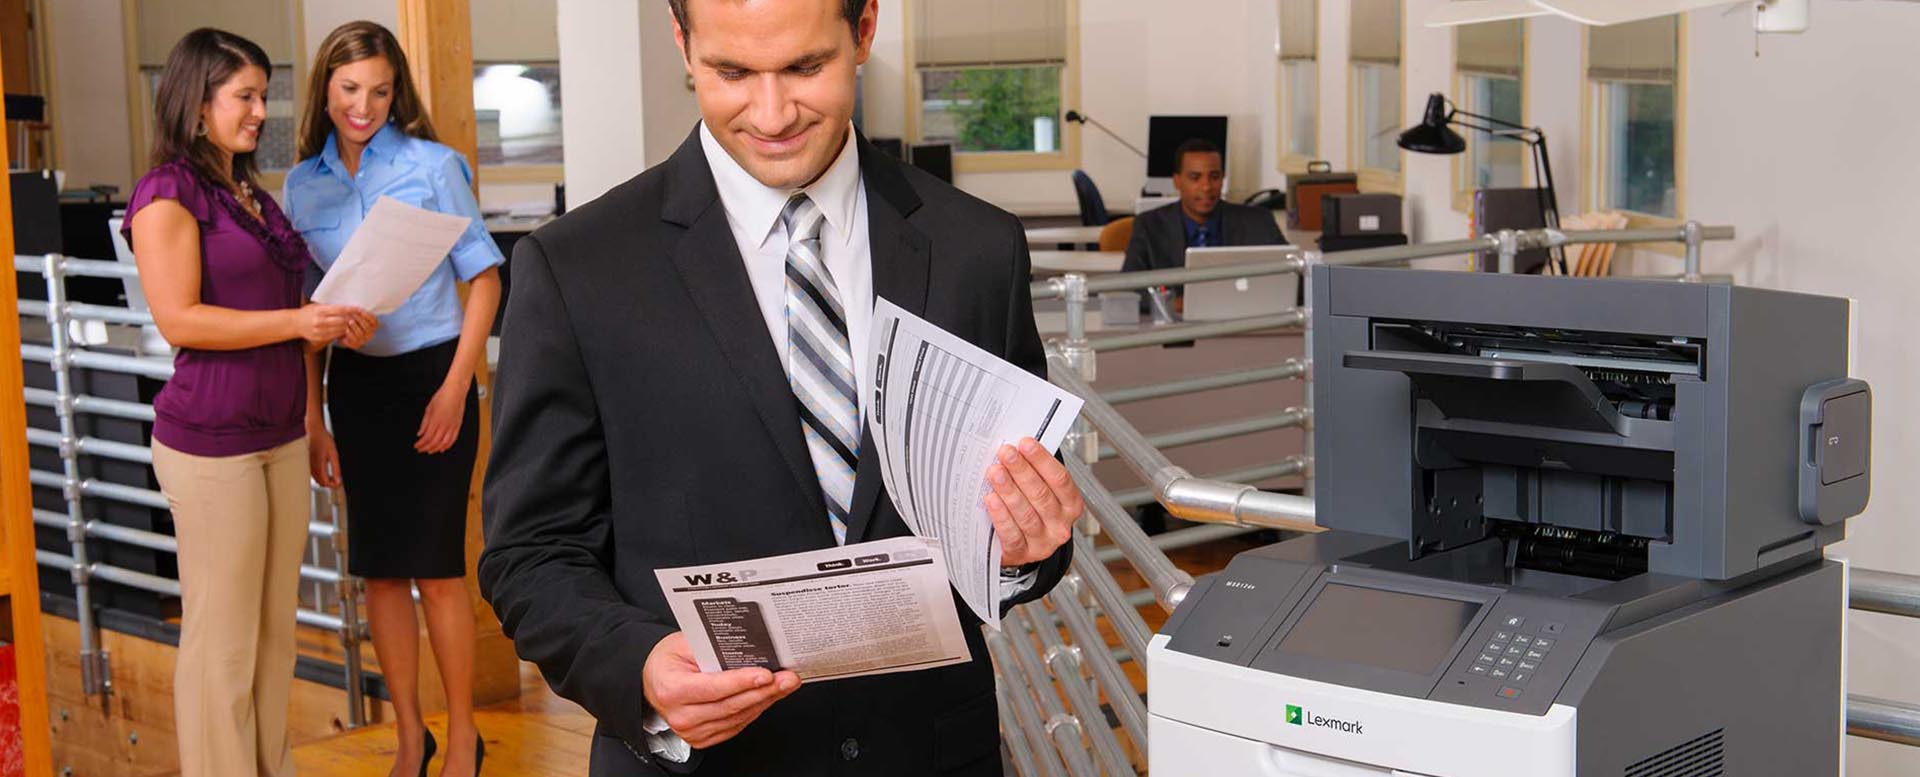 Duplicated Managed Print Services Makes for Excellent Customer Service and an Excellent Printing Environment - Get Duplicated!.jpg